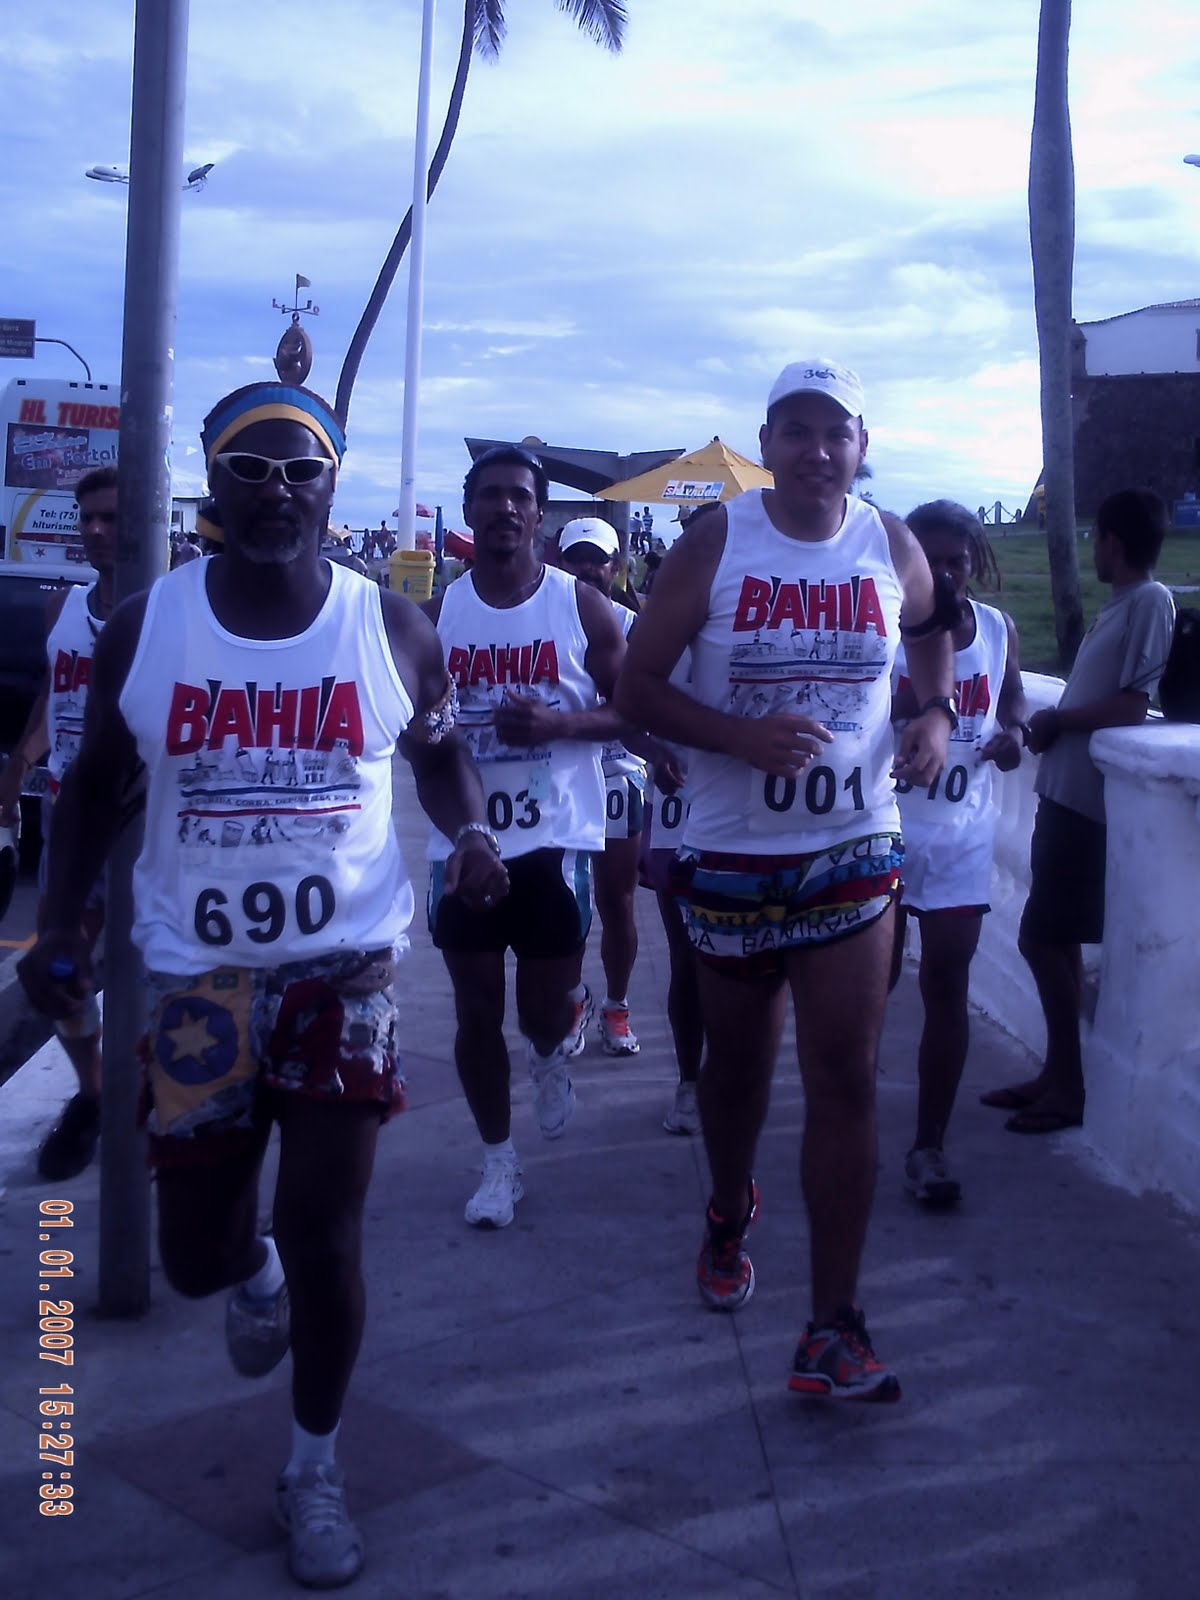 BAHIA RUNNING SIGHTSEEING